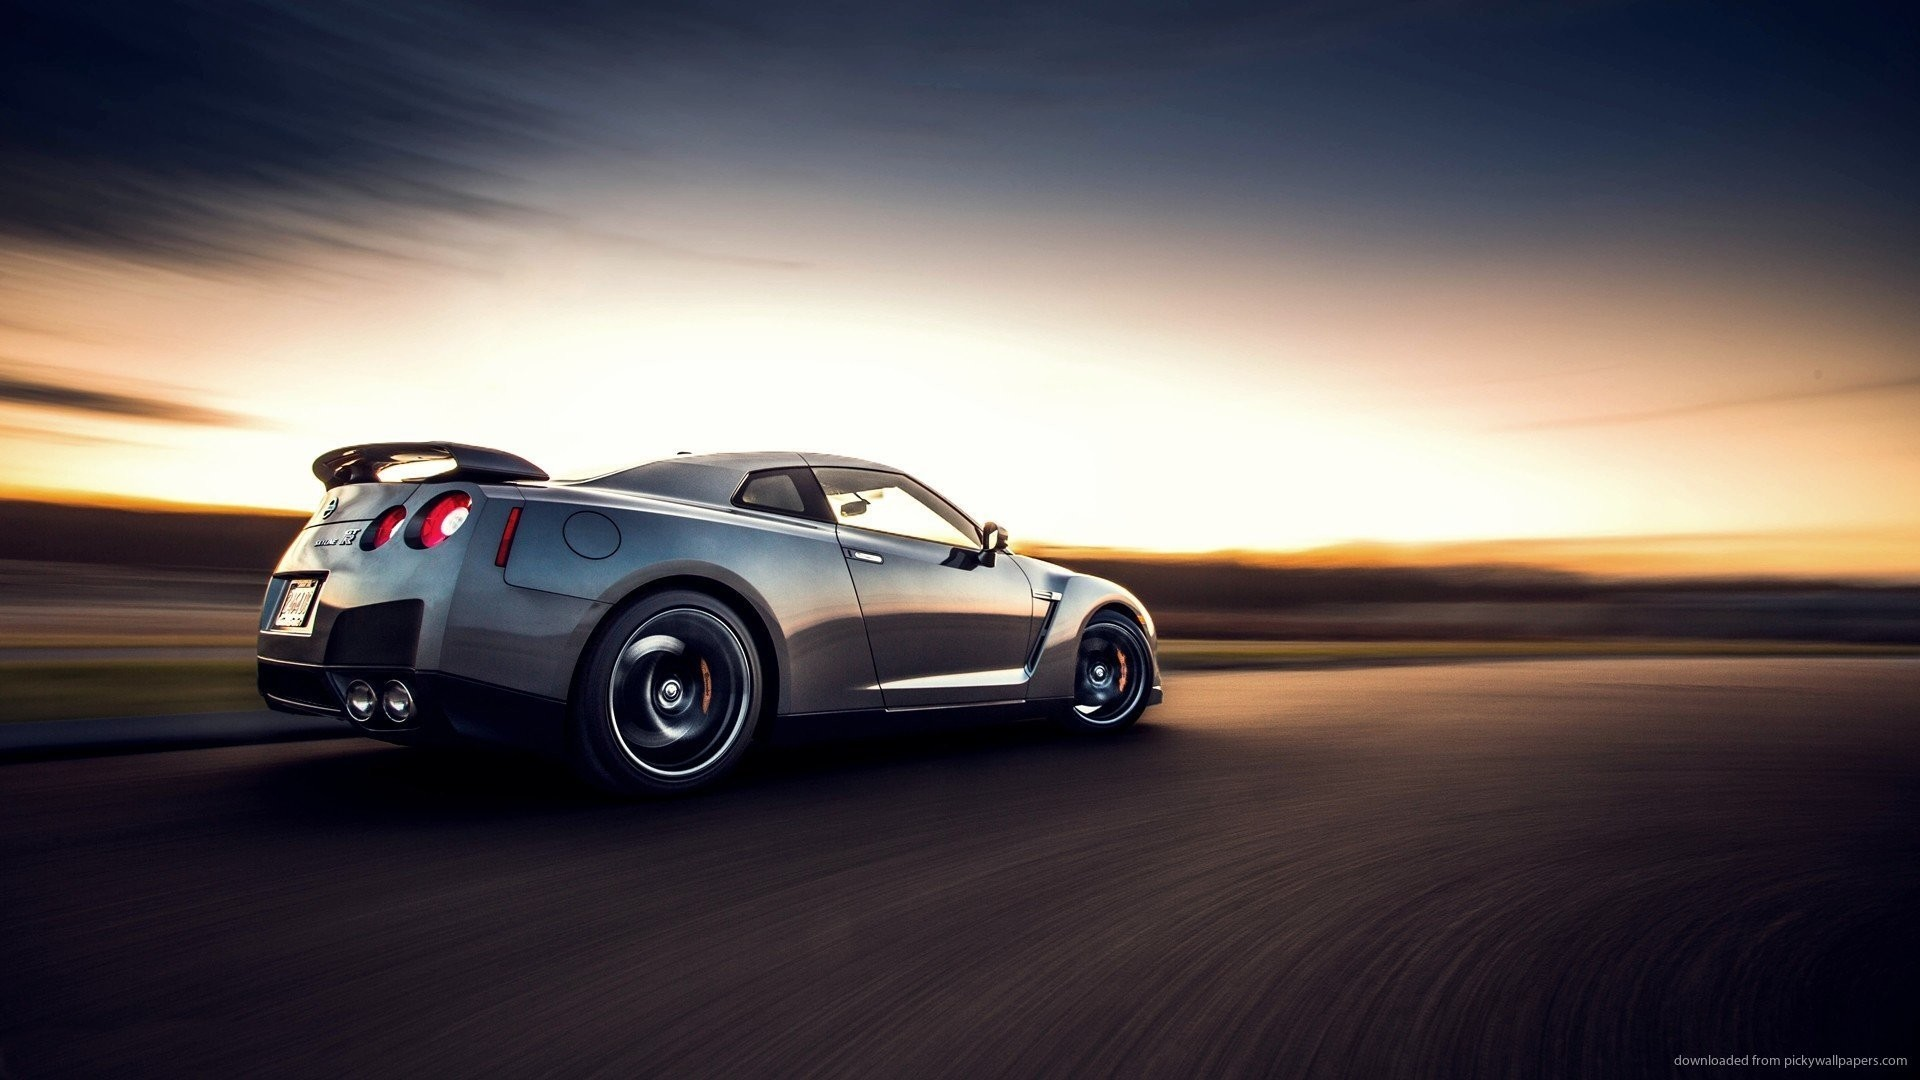 Nissan GTR Motion Blur Desktop Wallpaper picture